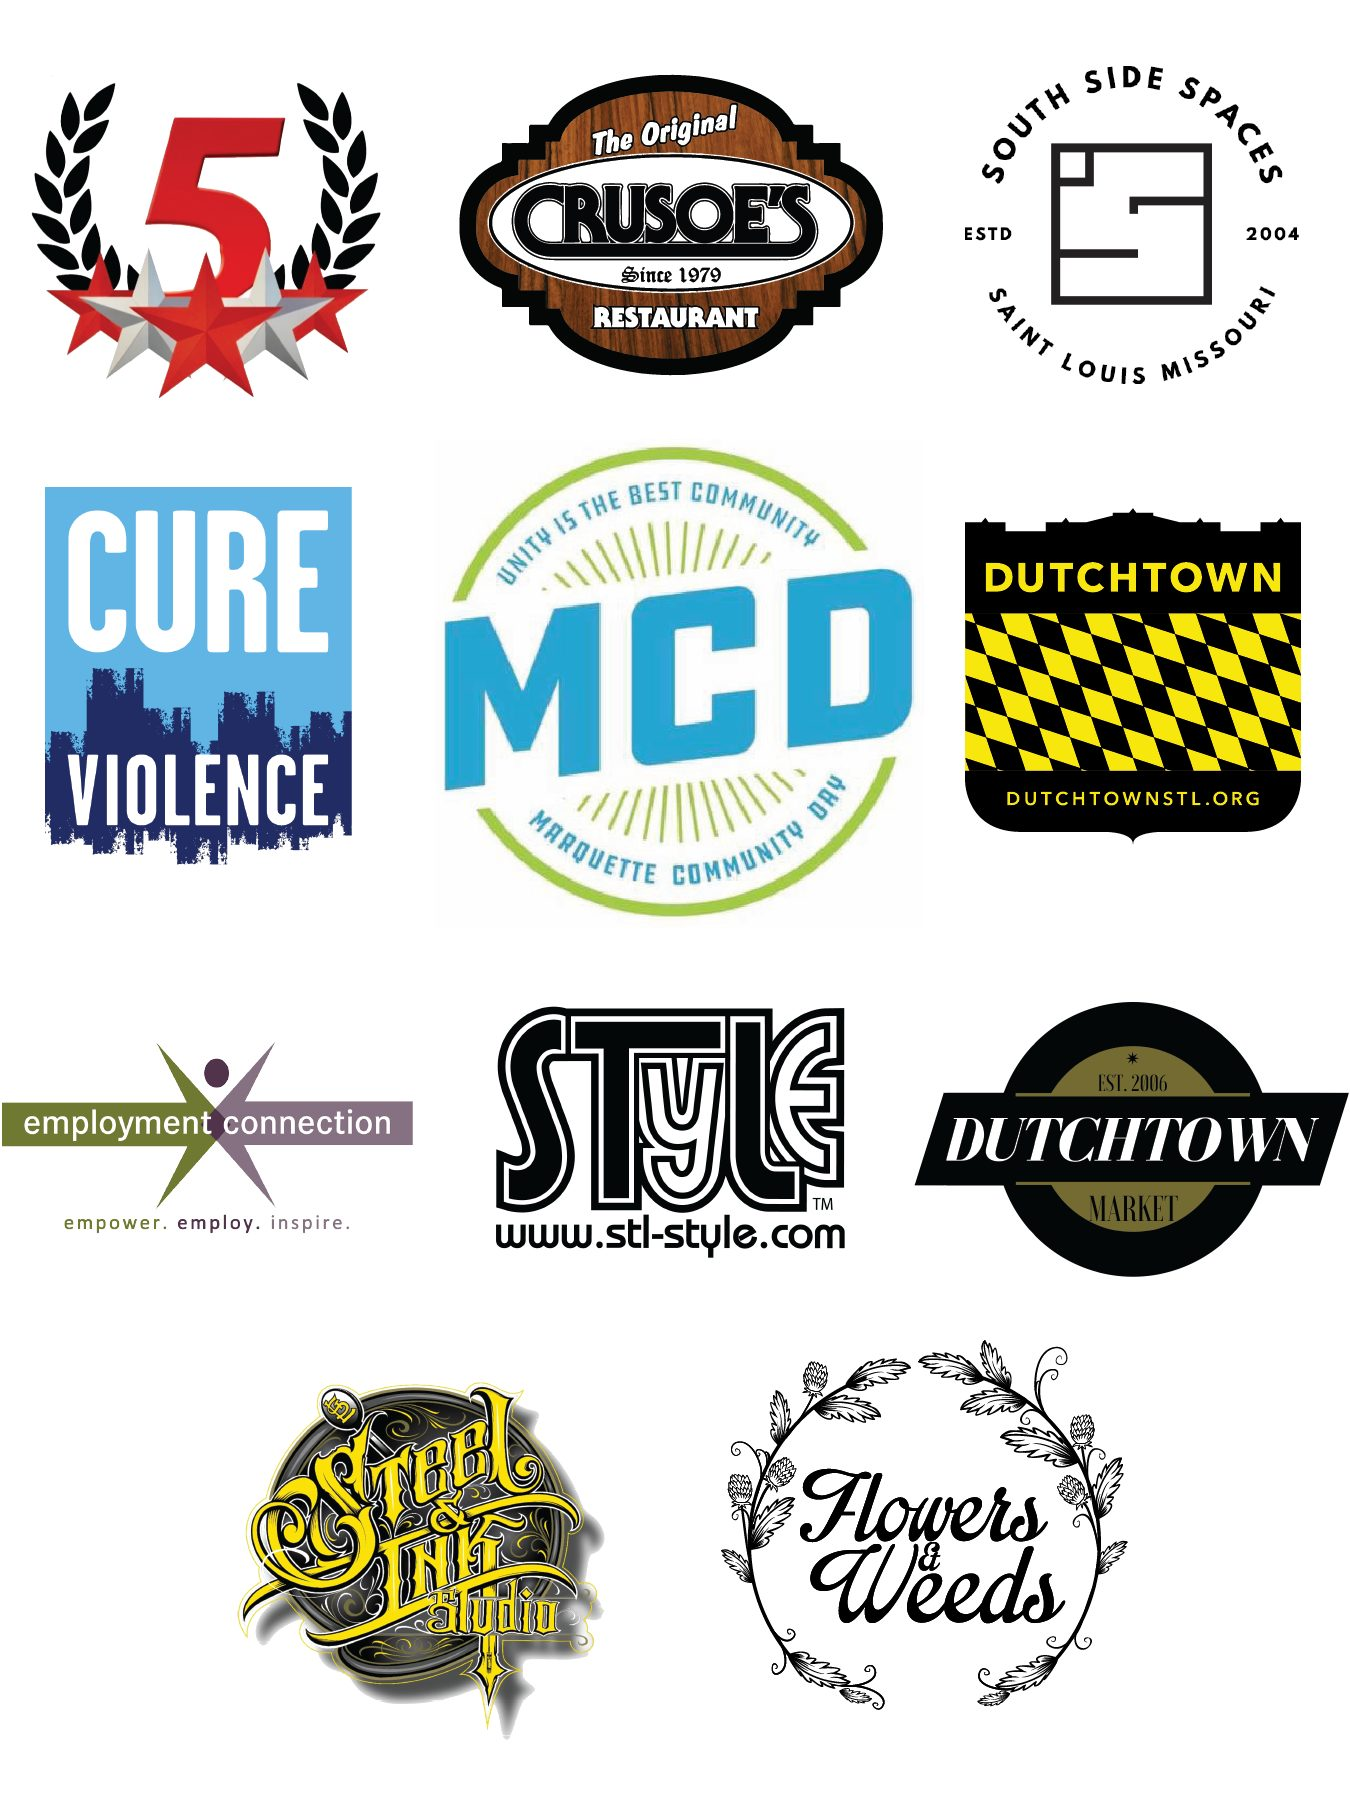 Sponsors of the Marquette Community Day Kickball Tournament: 5 Star Market, Original Crusoe's, South Side Spaces, Cure Violence, DutchtownSTL, Employment Connection, STL STyLe, Dutchtown Market, Steel and Ink Tattoo, and Flowers and Weeds.